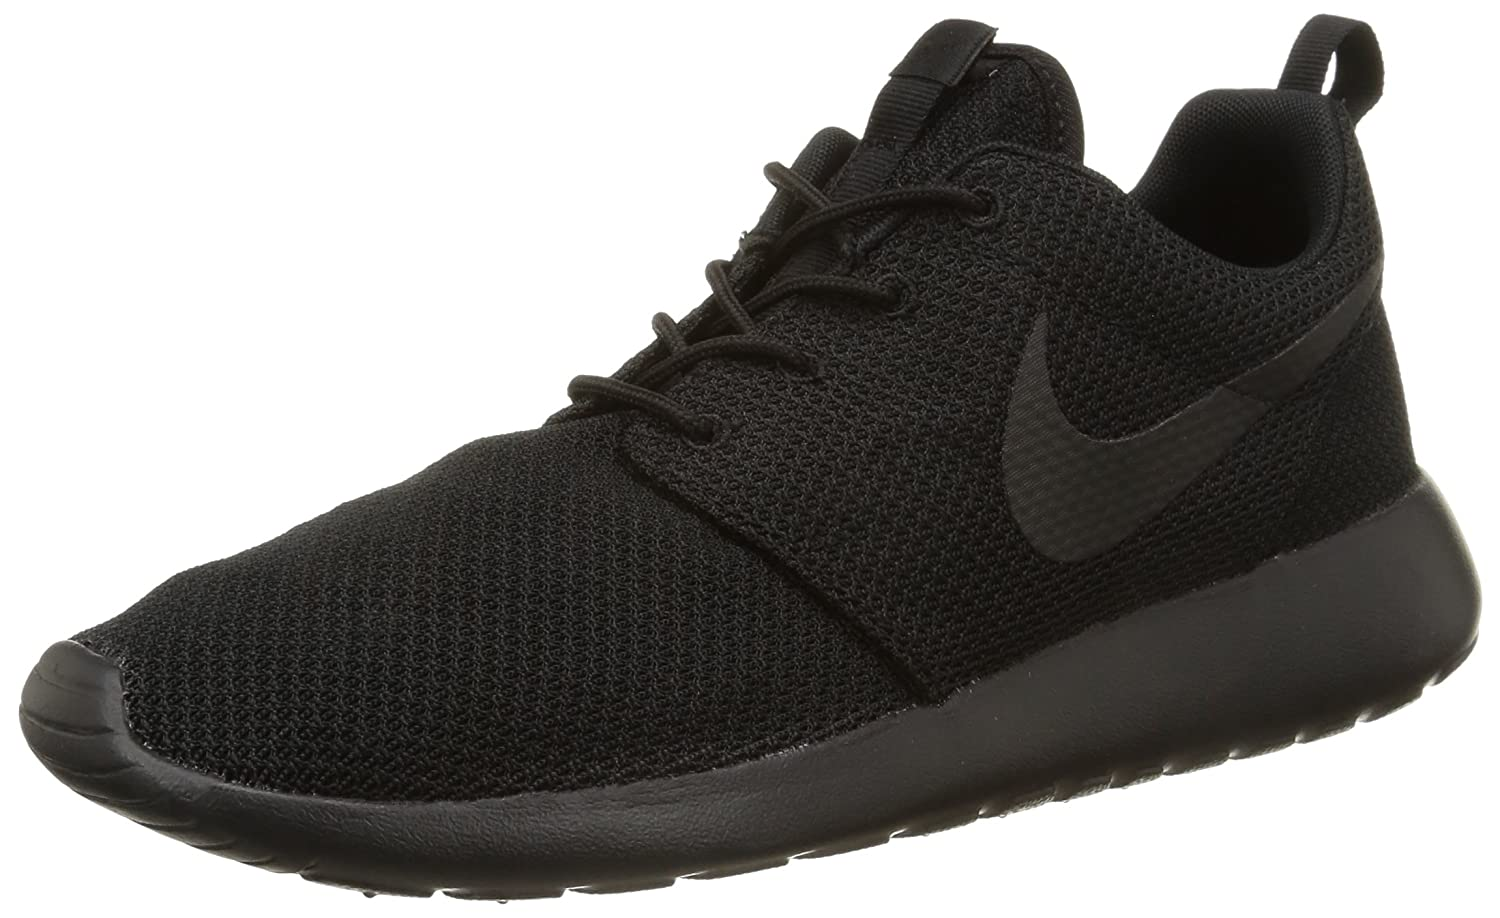 brand new ea6c9 2f2ed Nike Roshe One Black/Black Men's Athletic Shoes Size 14